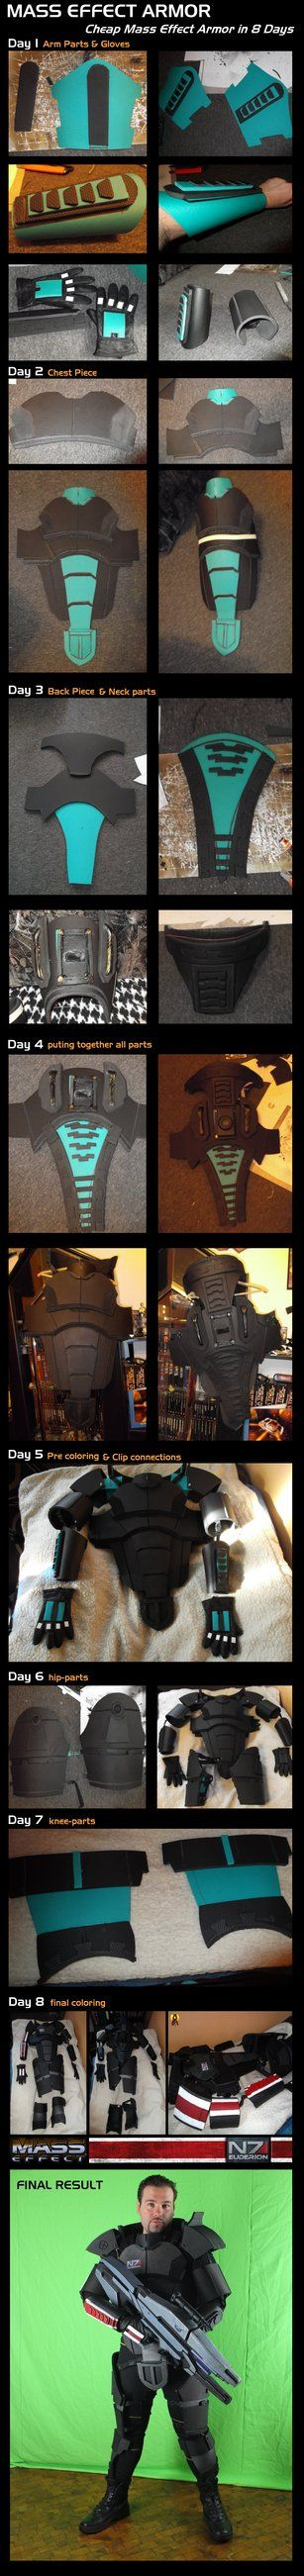 Mass Effect Armor Step by Step Construction by Euderion on DeviantArt